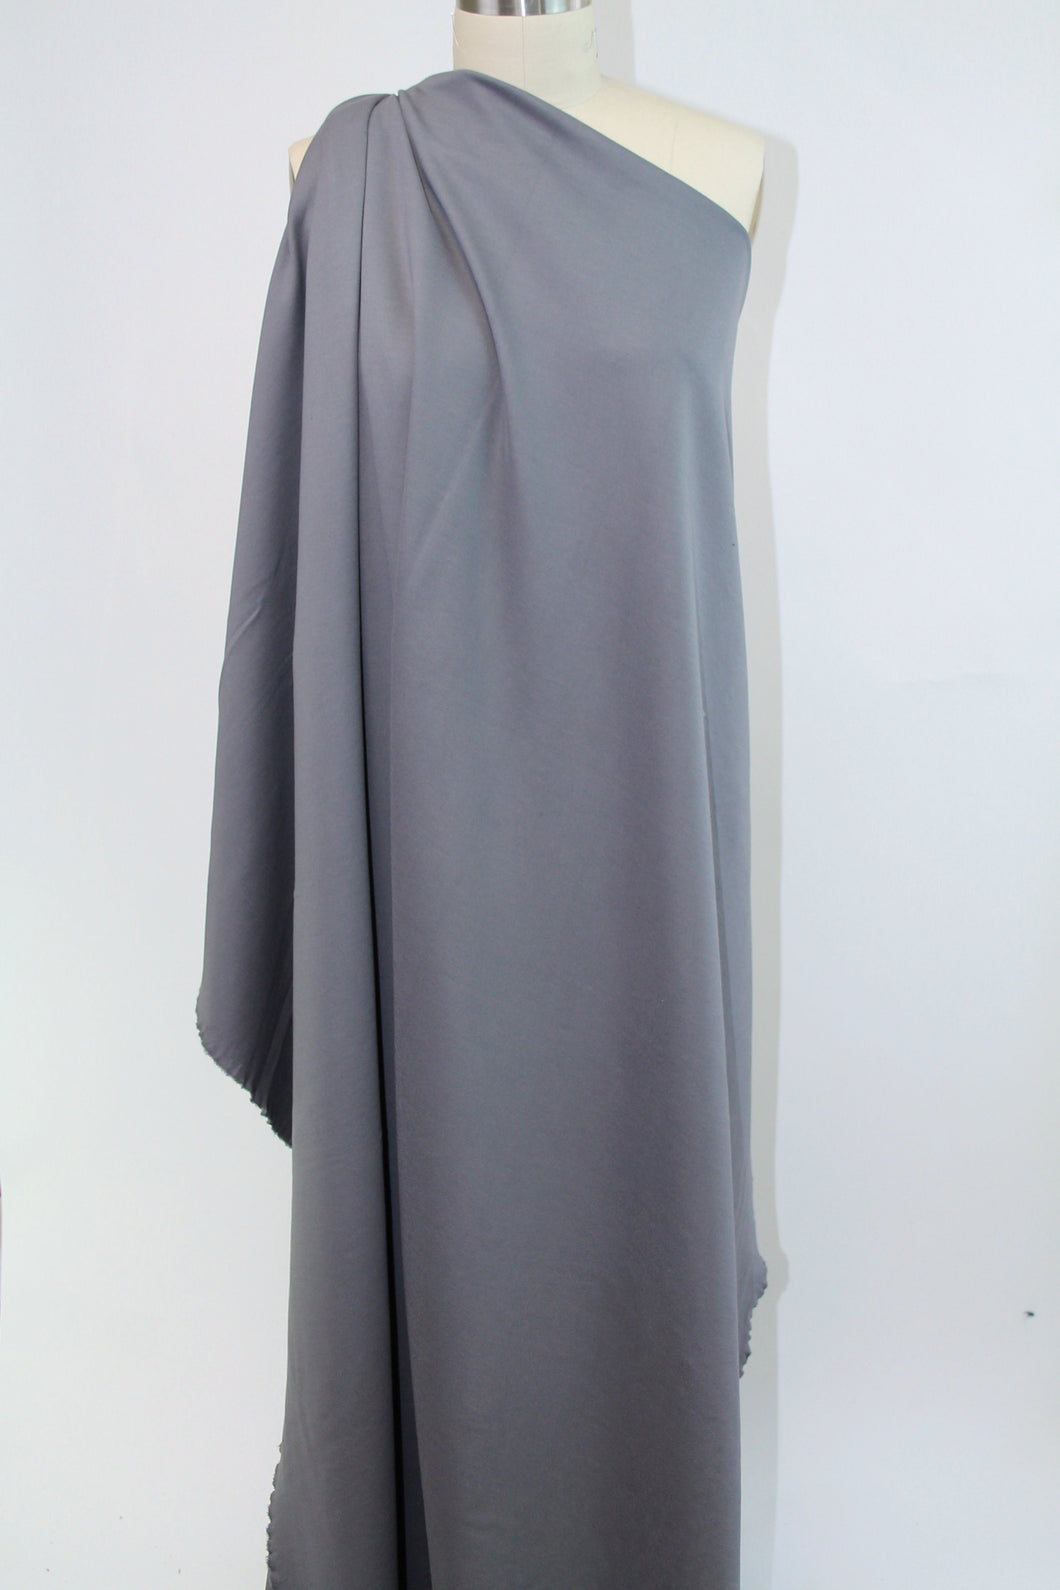 Designer Rayon Double Knit - Steely Gray